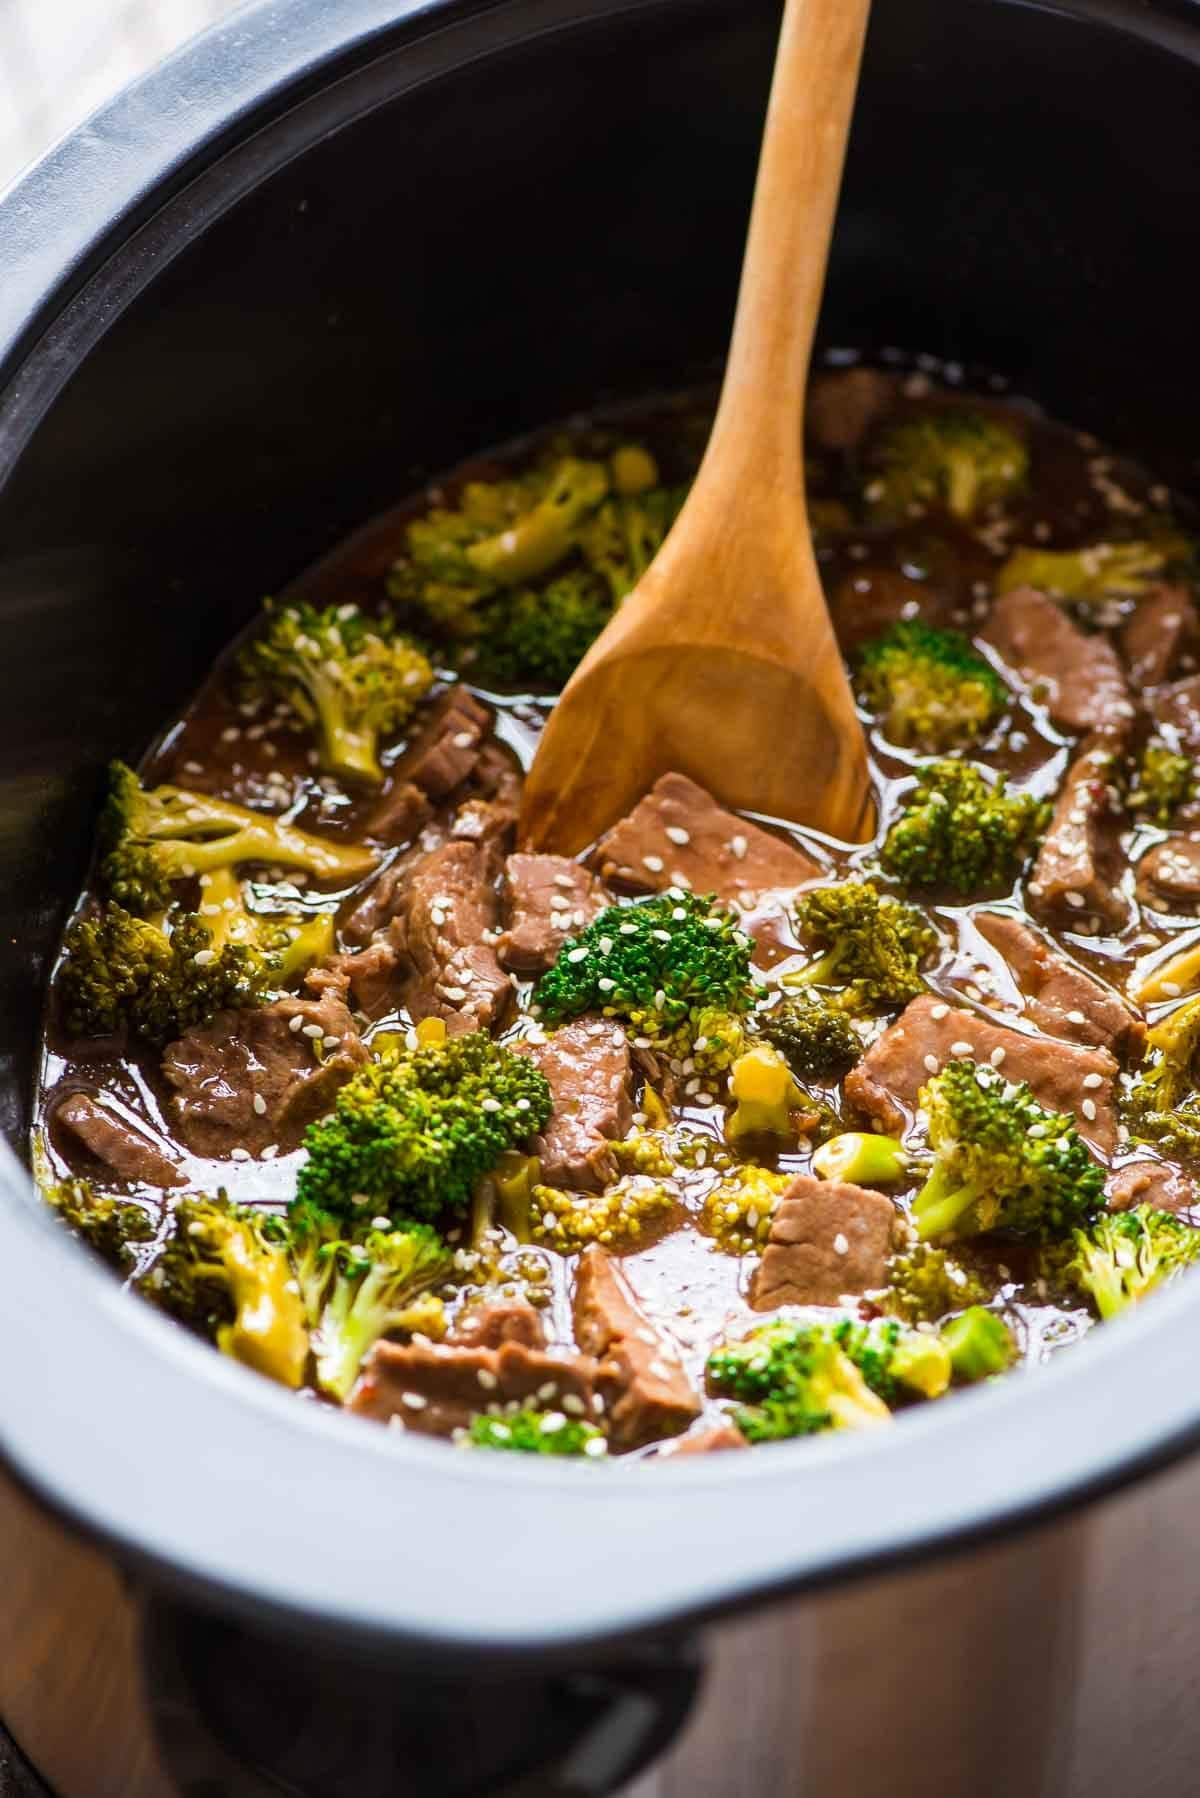 crock pot full of Asian Beef with Broccoli. A wooden spoon is stirring the dish.